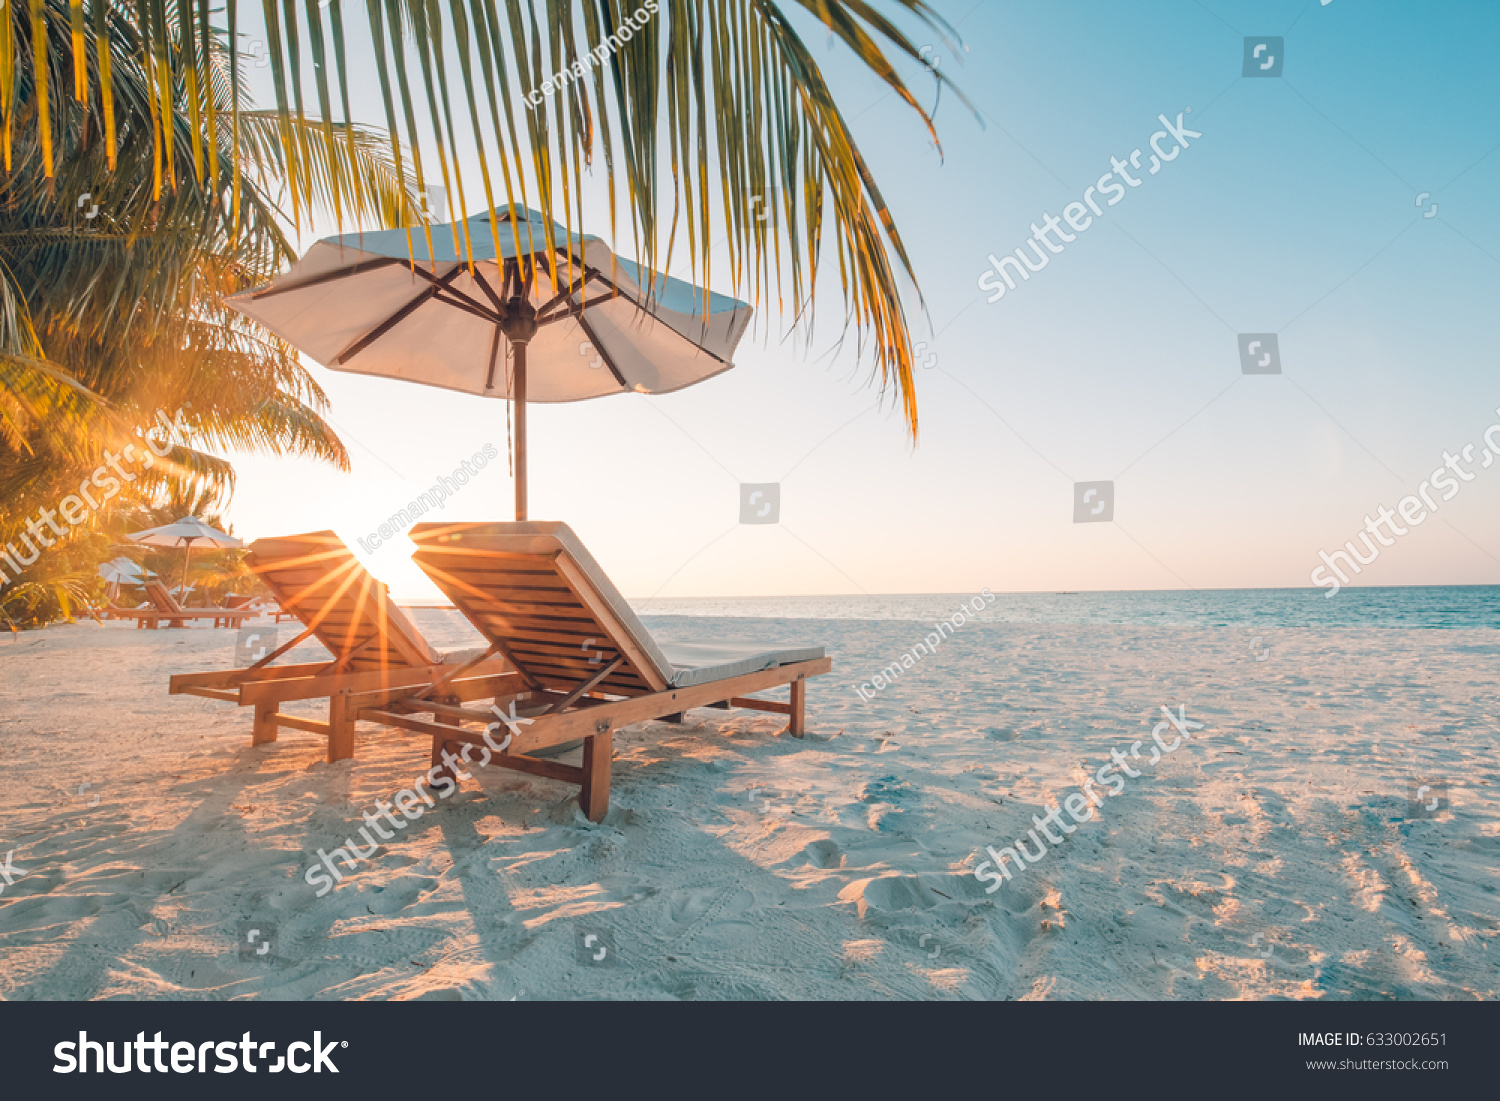 Beautiful beach. Chairs on the sandy beach near the sea. Summer holiday and vacation concept for tourism. Inspirational tropical landscape #633002651 - 123PhotoFree.com